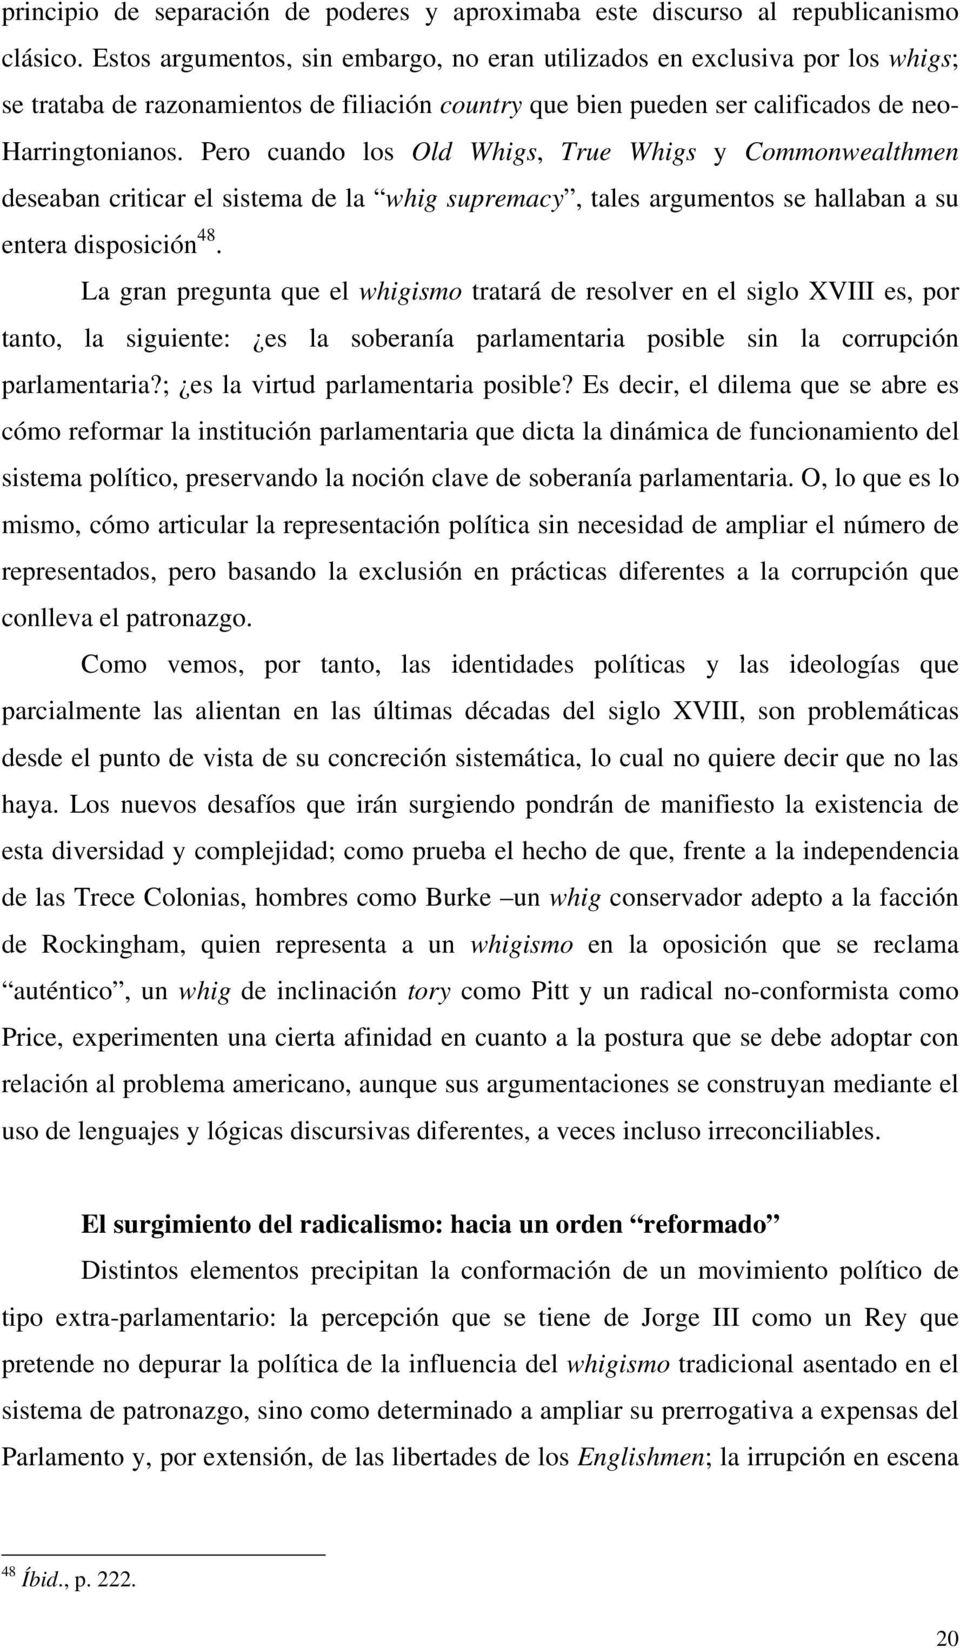 Pero cuando los Old Whigs, True Whigs y Commonwealthmen deseaban criticar el sistema de la whig supremacy, tales argumentos se hallaban a su entera disposición 48.